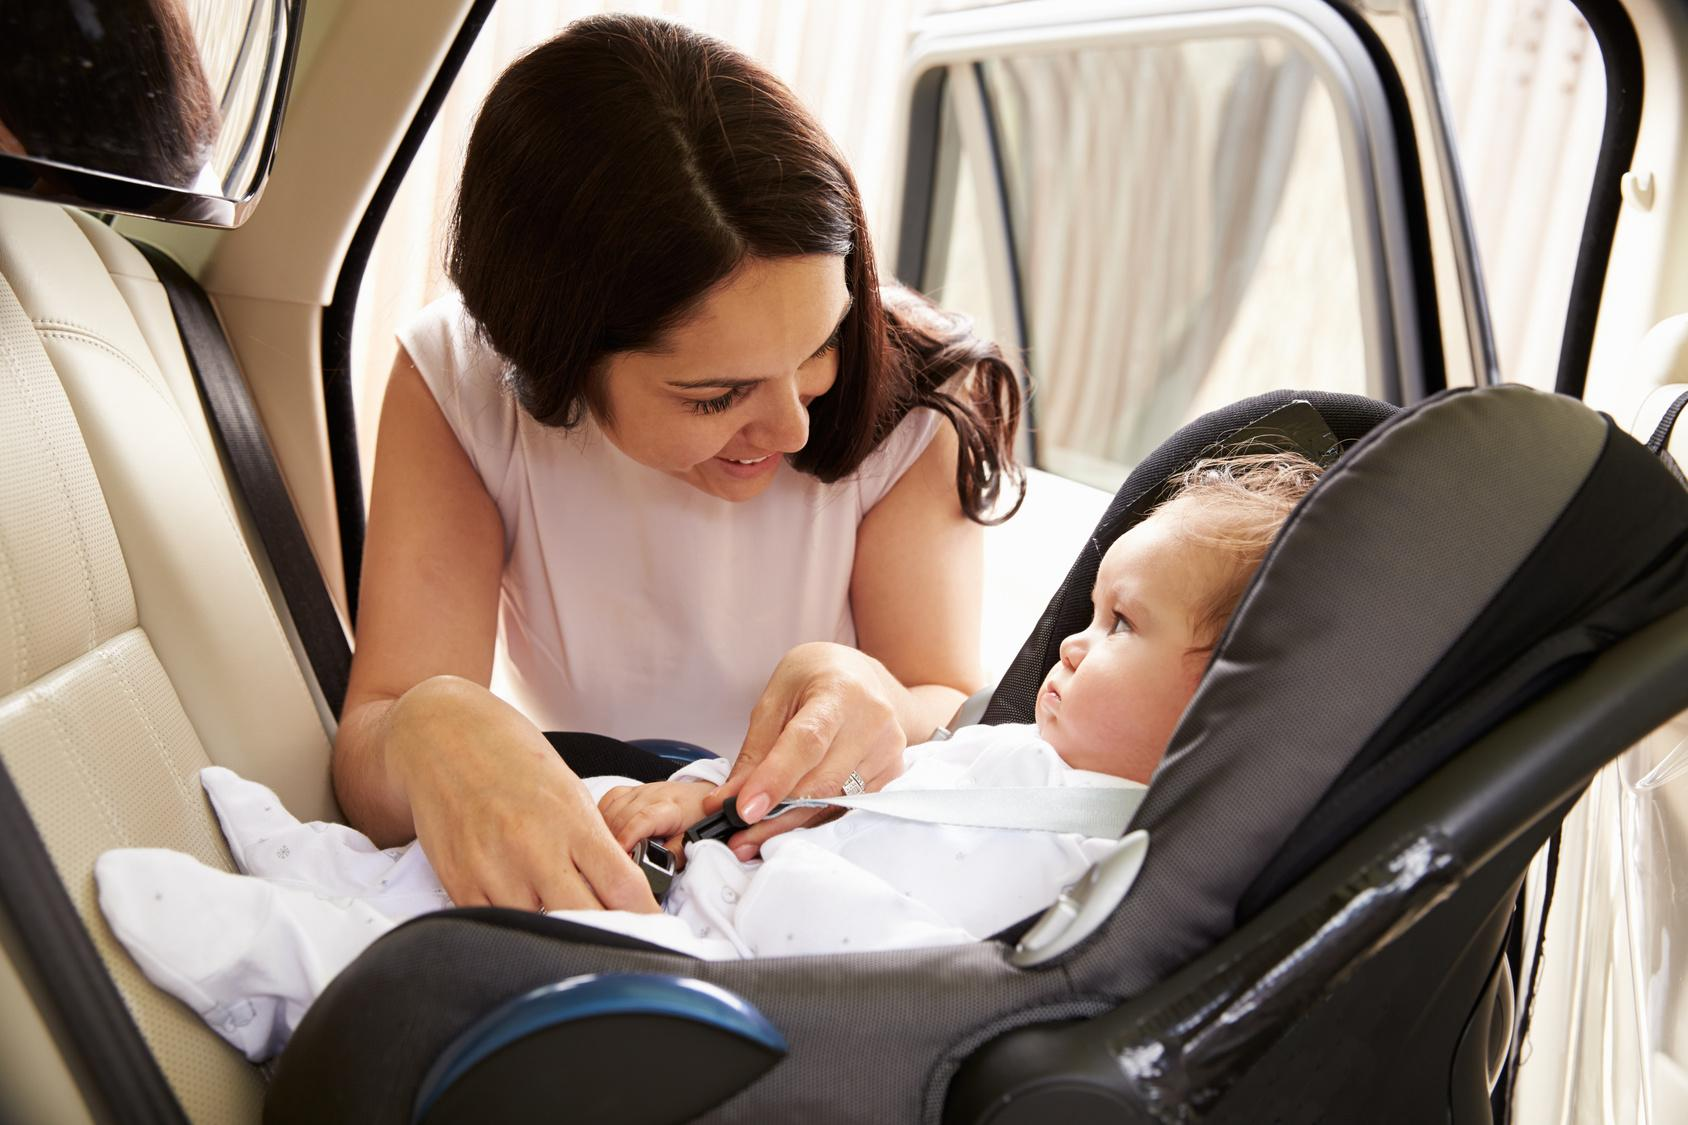 Planning a trip with a new baby? Pack these essentials in to keep your baby happy and fresh...